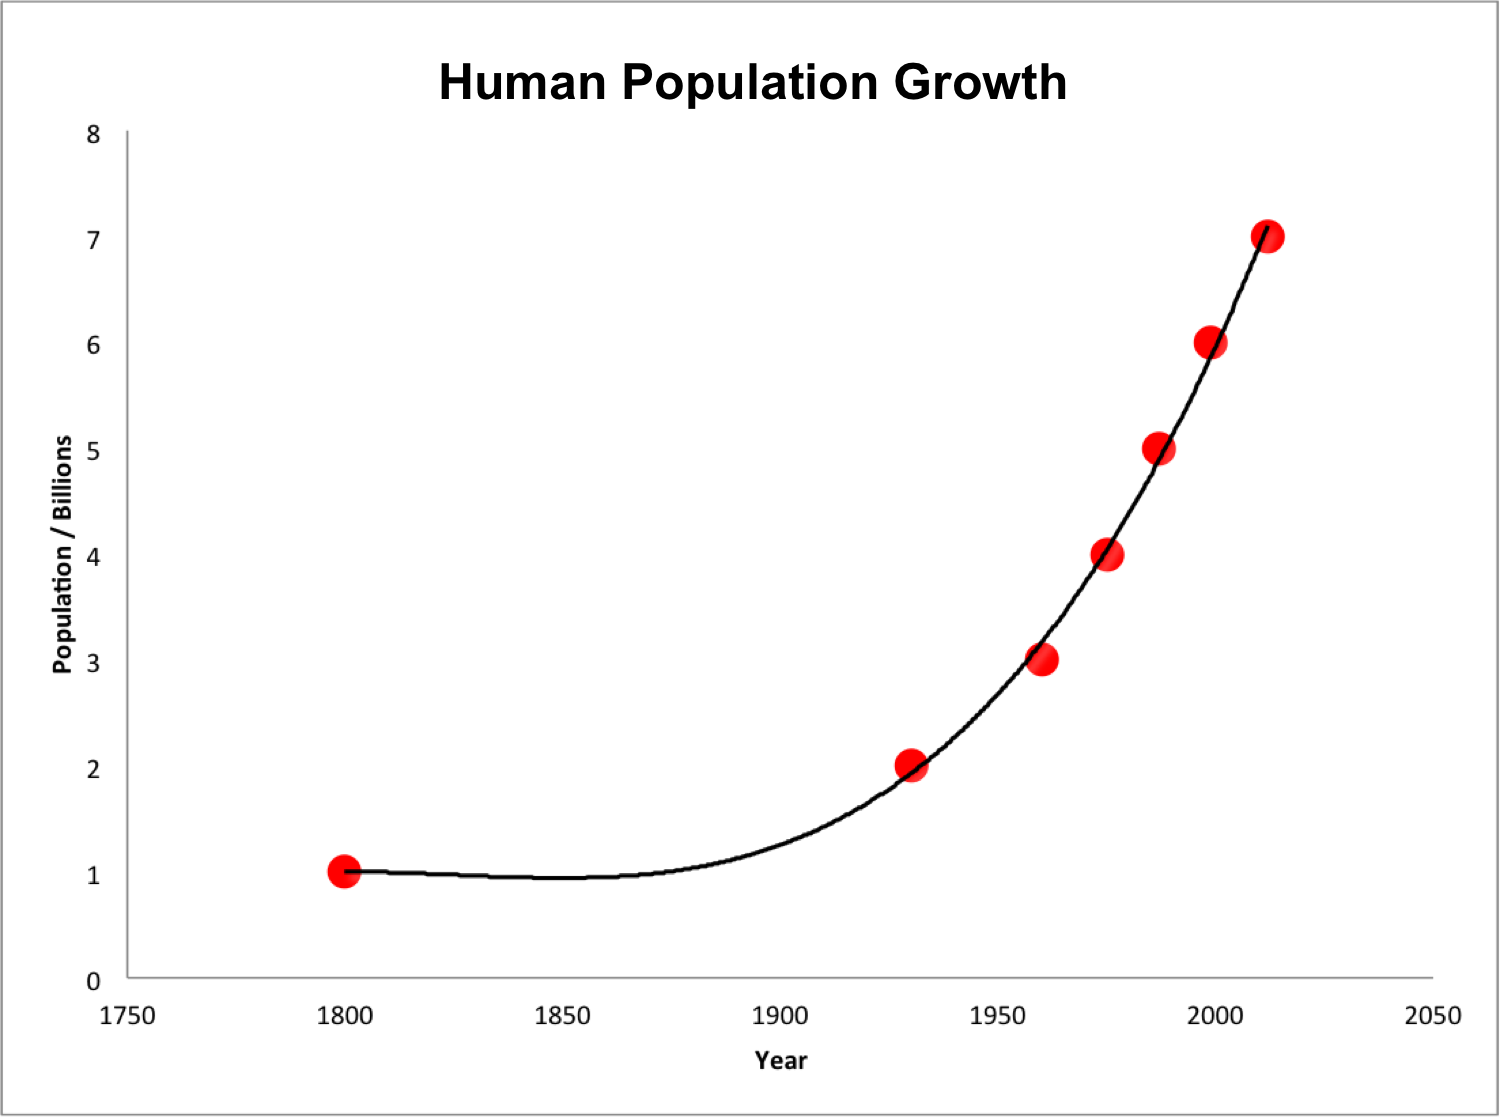 history of population growth in the united states during the 20th century American economic growth in the 20th century was characterized by the rise of the american corporation and fall of the business barons of the past.